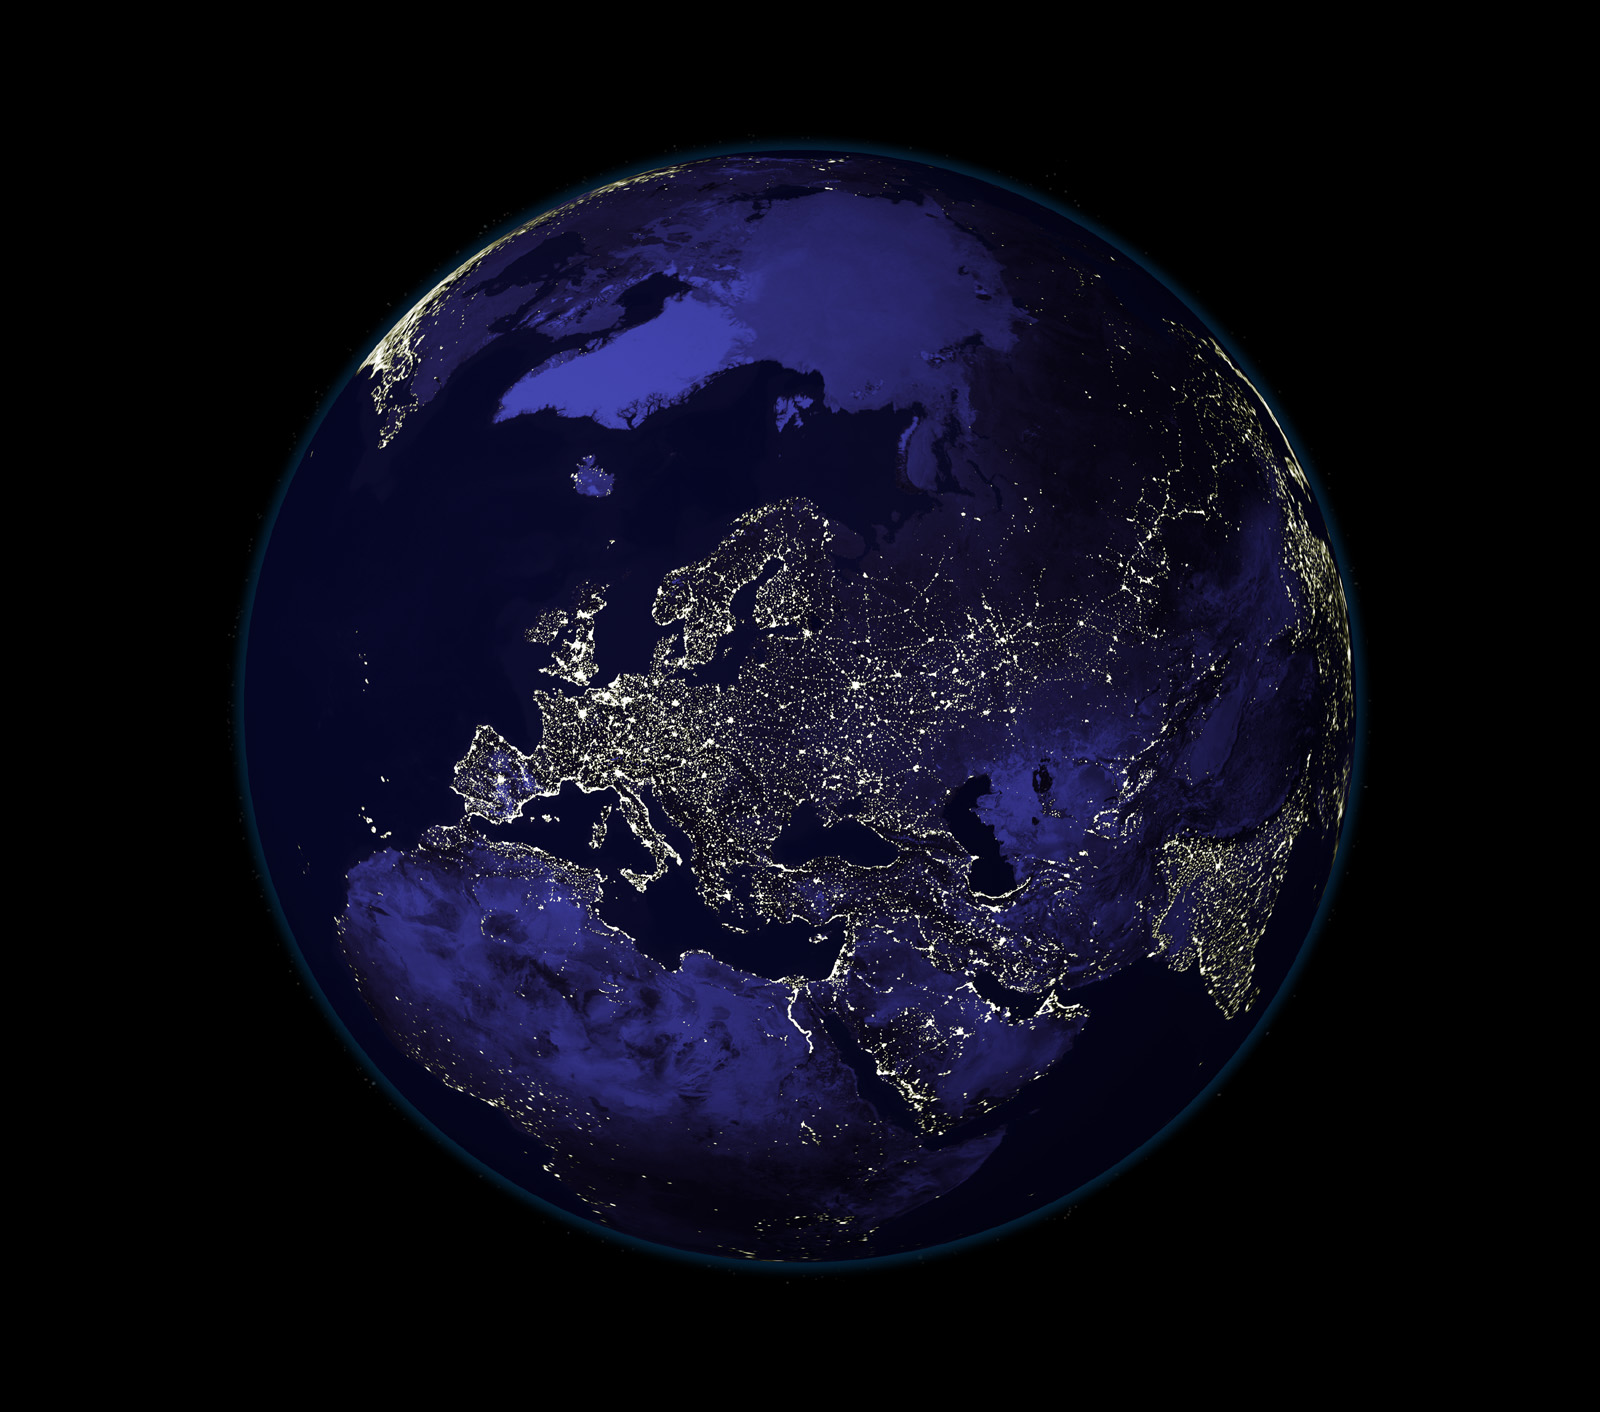 nasa earth night sky - photo #31